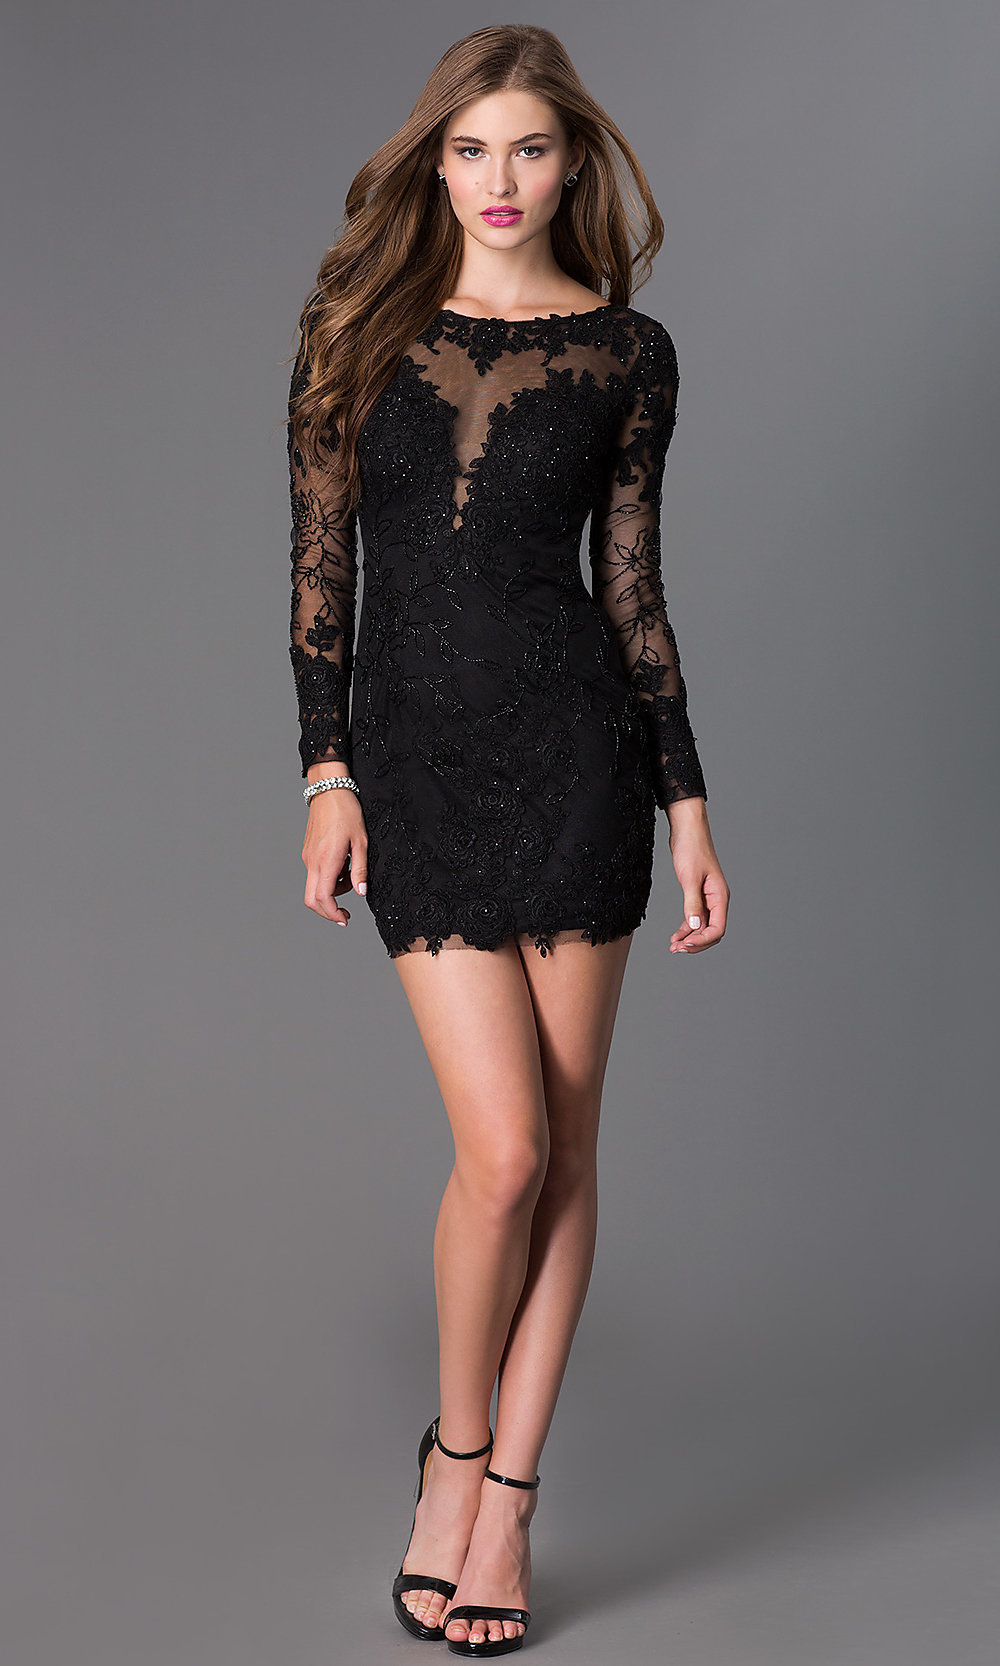 Long-Sleeve Lace Short Prom Dress